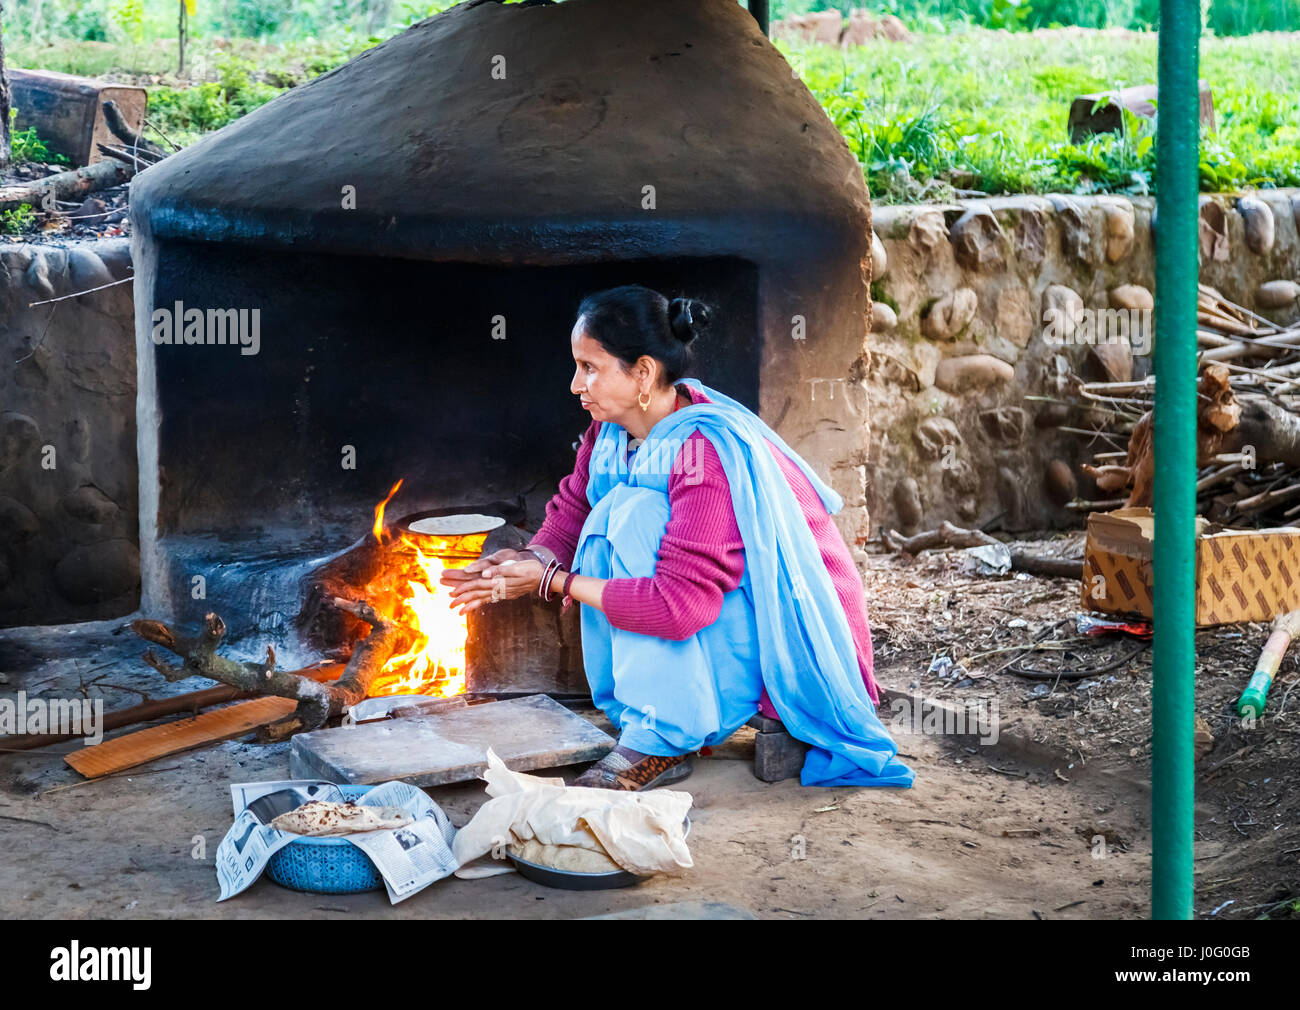 Local Indian woman wearing blue sari cooking chapatis in an oven with open fire, Judge's Court Hotel, Pragpur, - Stock Image